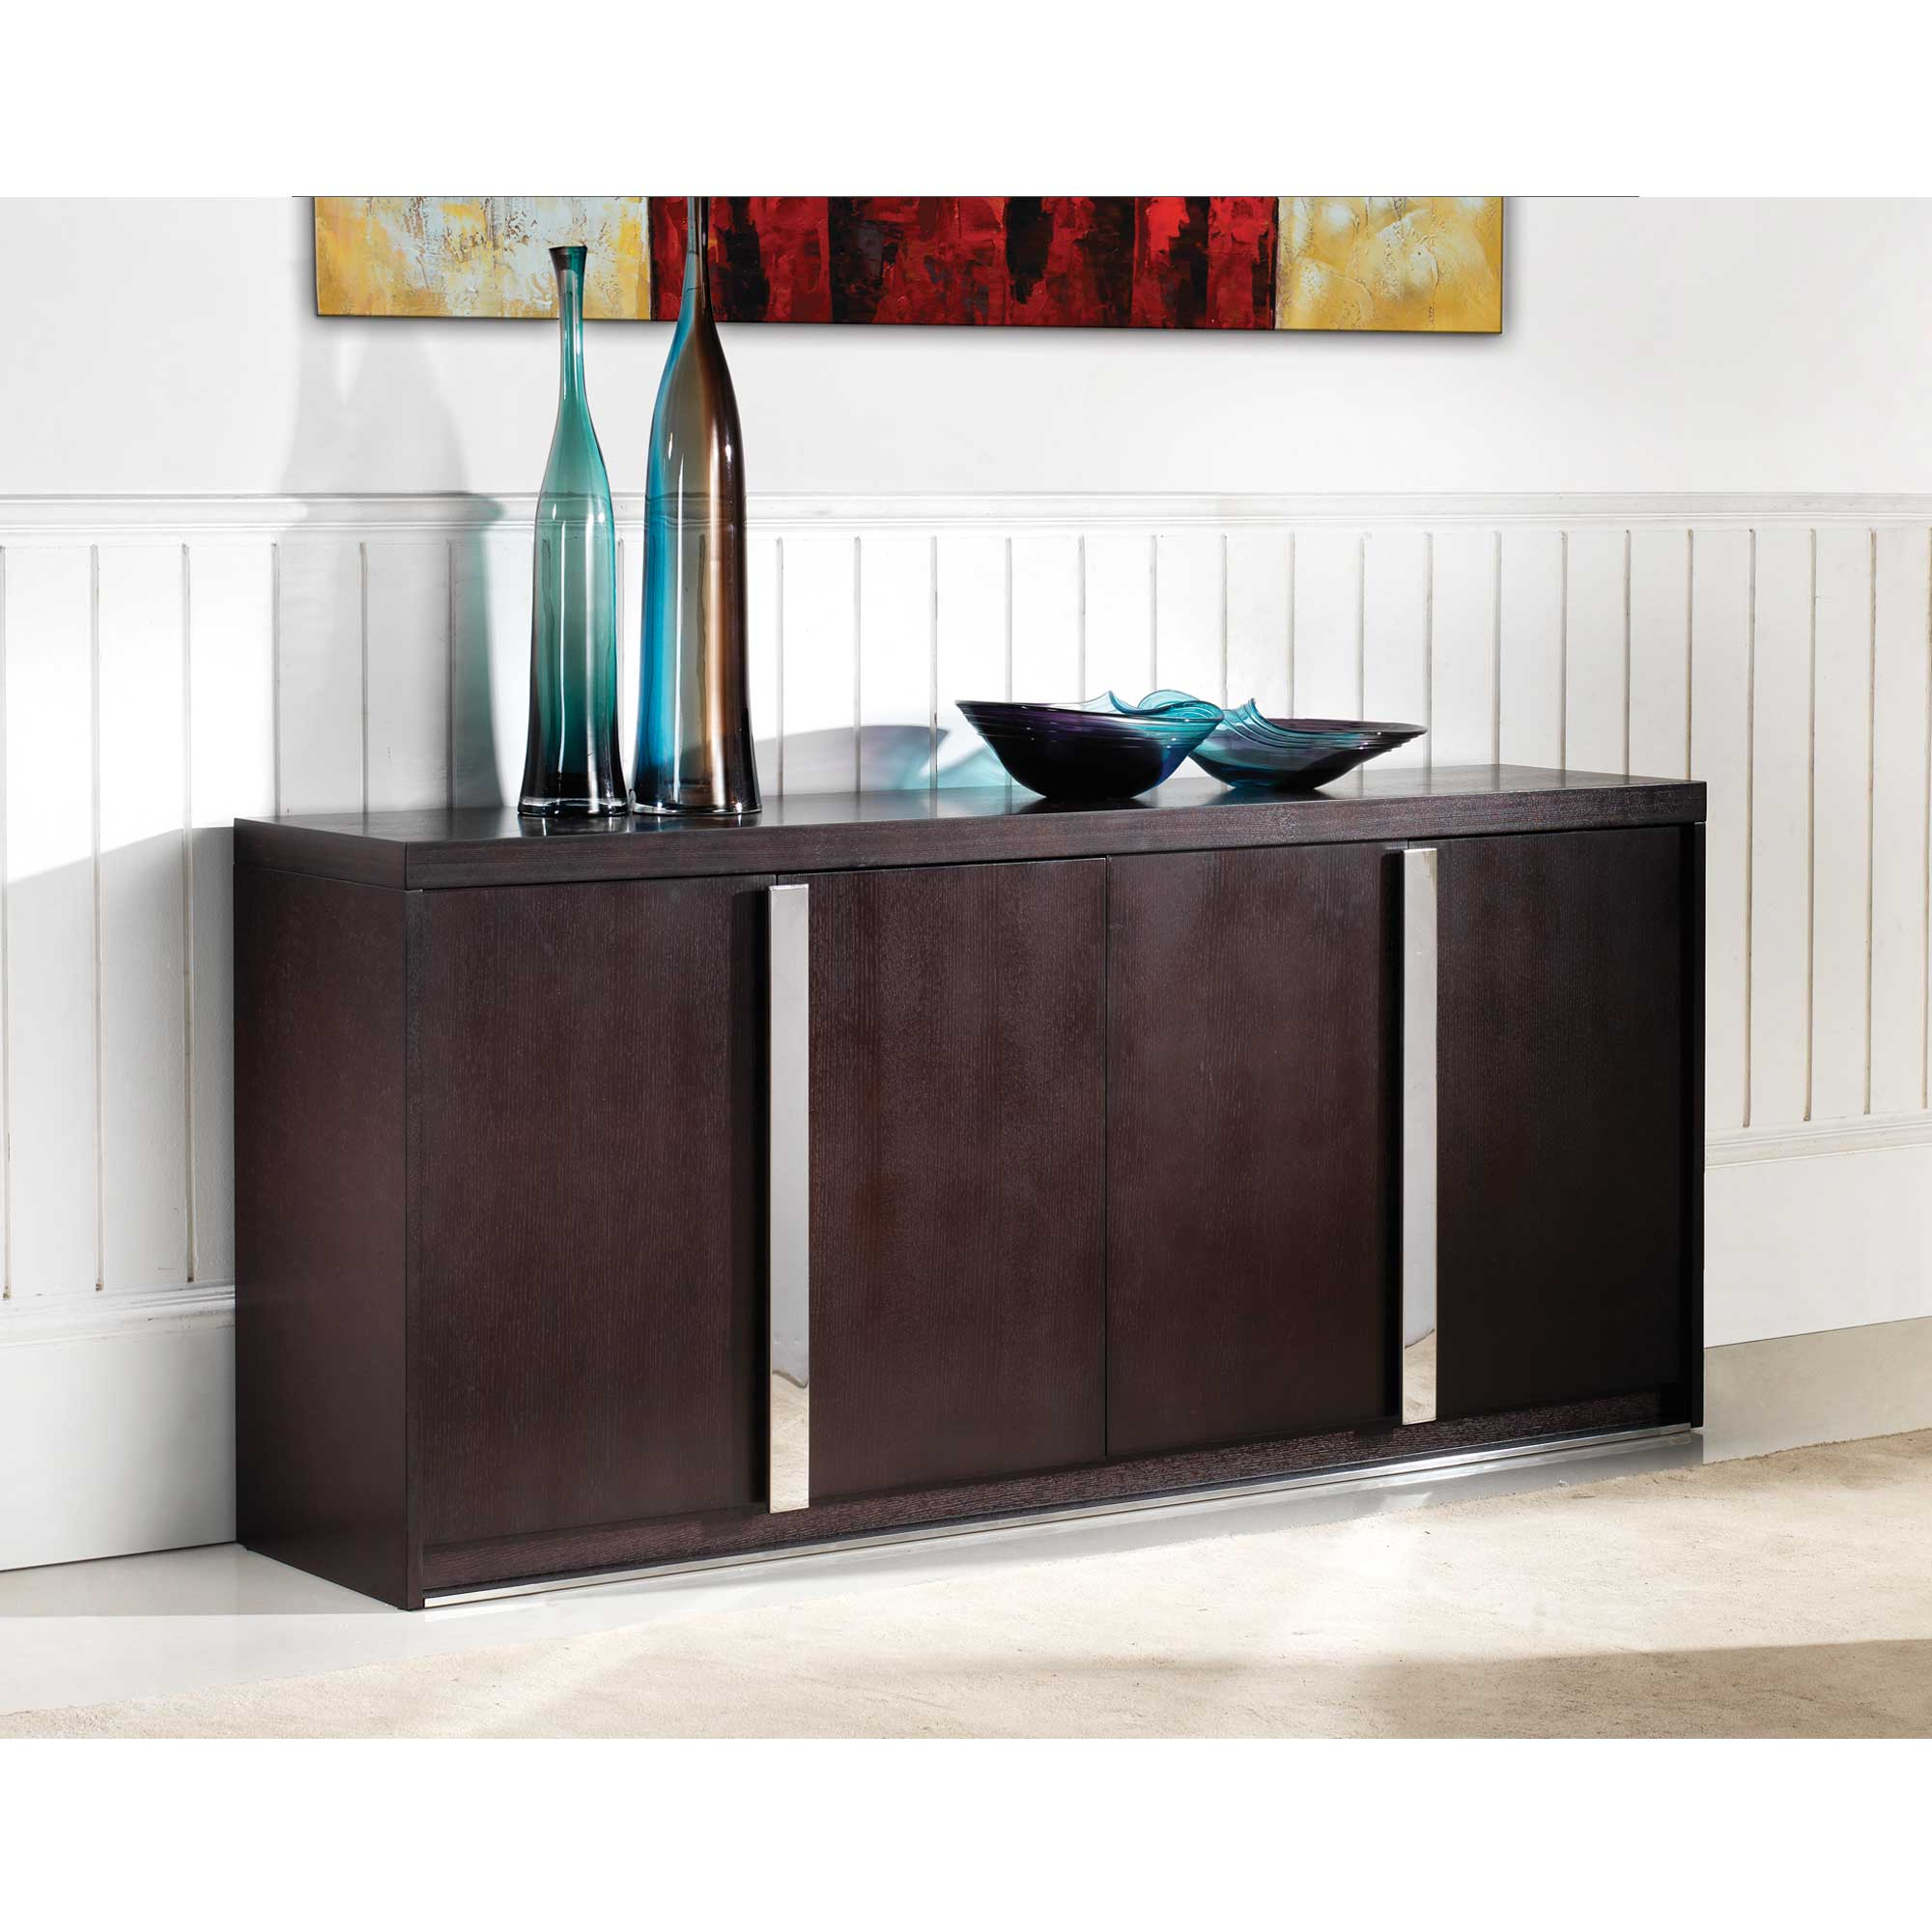 Wenge buffet home deco - Sideboard wenge ...